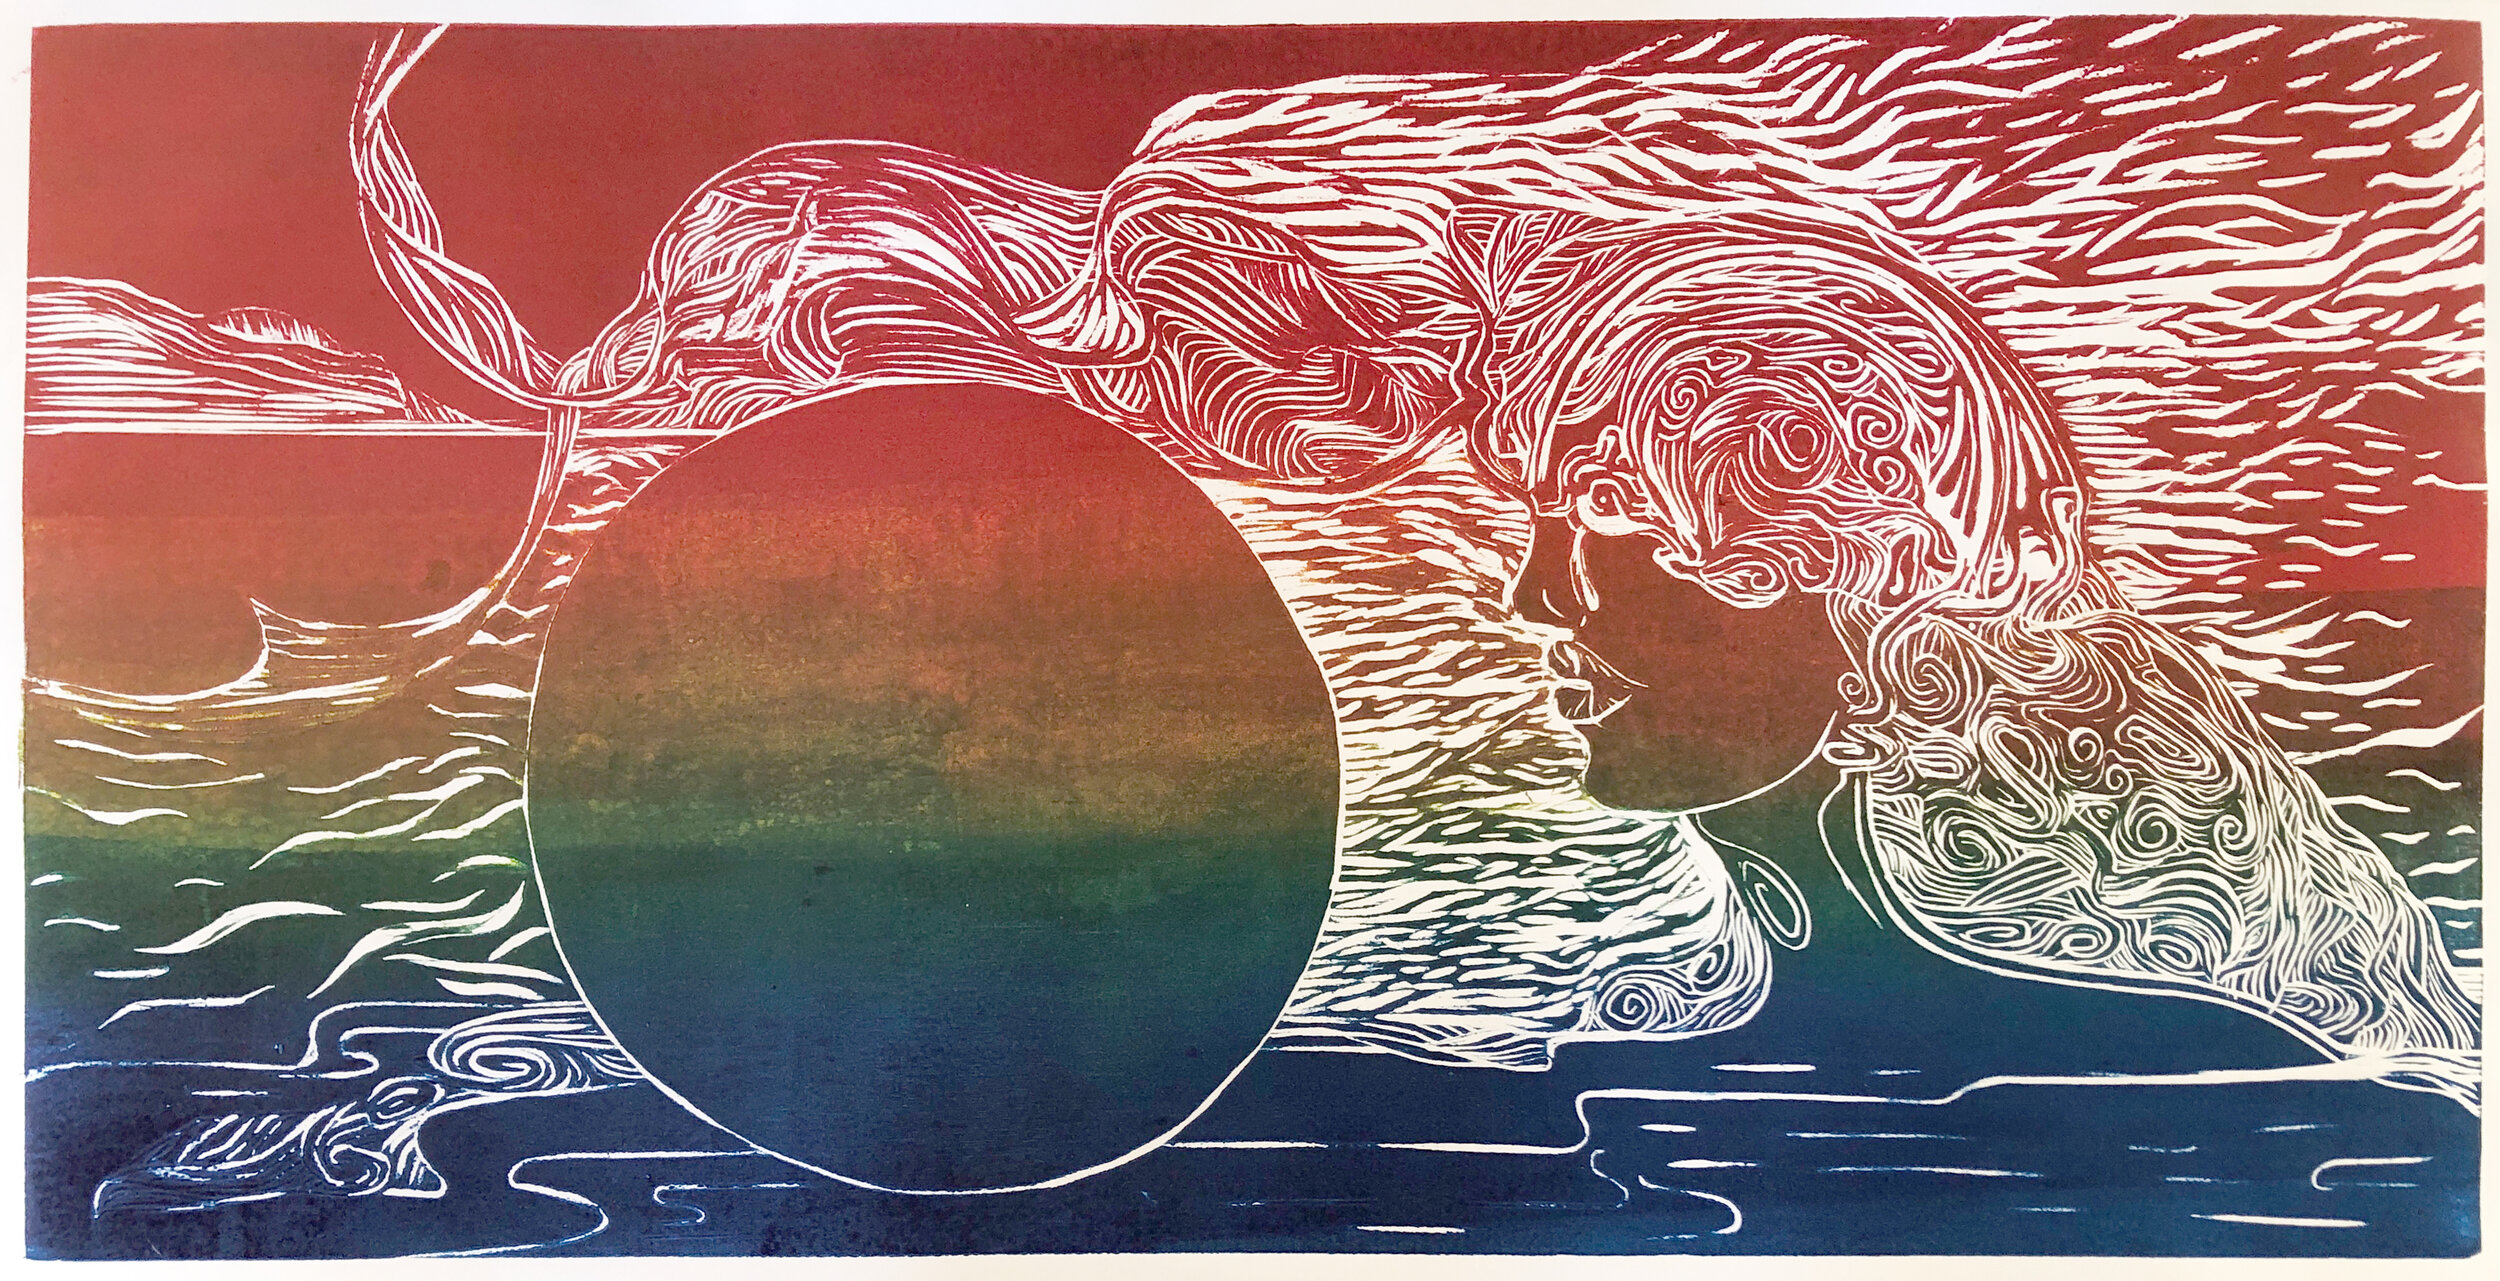 """Melpomene (1 of 4)    Woodcut Print  12"""" x 24""""  varied edition $600  Click image to enlarge ⦿  Inquire"""